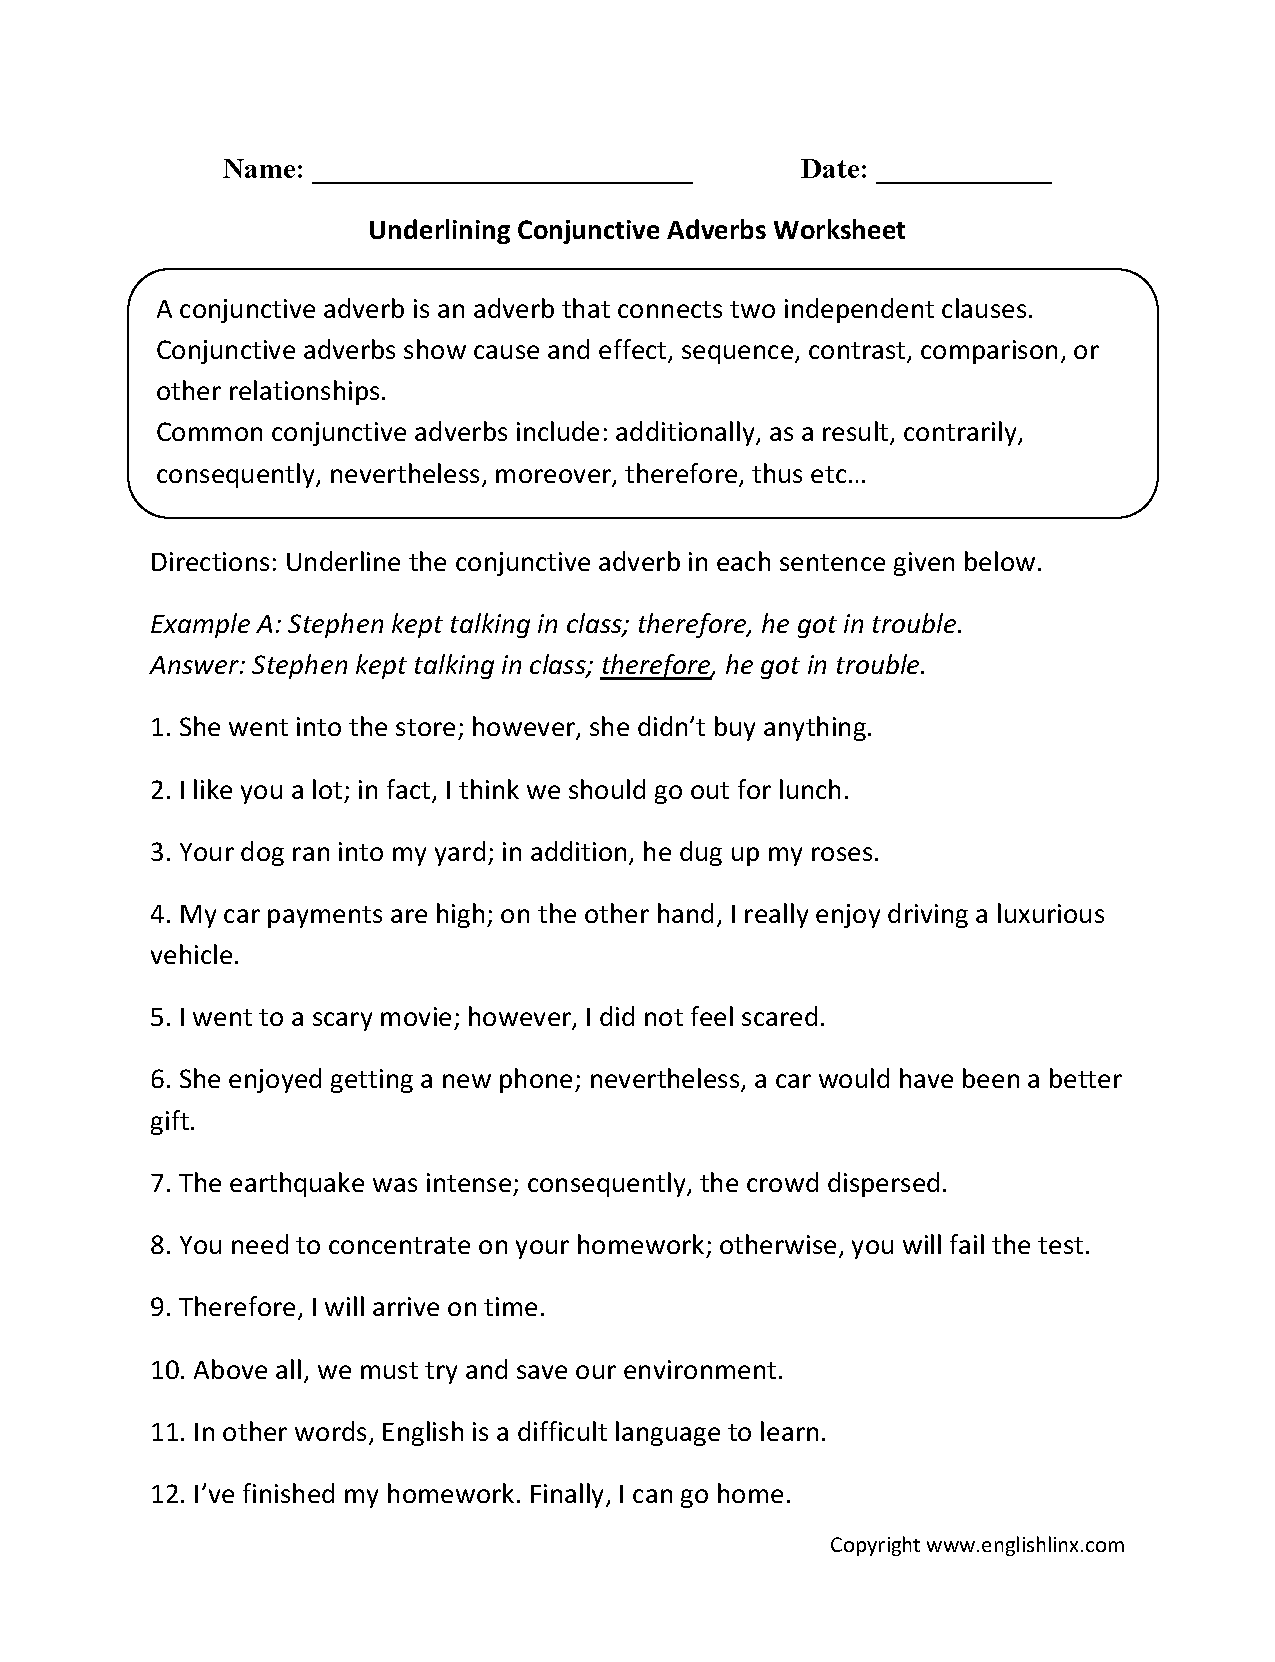 Weirdmailus  Winsome Englishlinxcom  Conjunctions Worksheets With Hot Worksheet With Cute Healthy Eating Worksheets For Adults Also Grade  Math Area And Perimeter Worksheets In Addition M Phonics Worksheets And Subtraction With Regrouping Worksheets Th Grade As Well As These Those Worksheets Additionally Compare And Contrast Reading Comprehension Worksheets From Englishlinxcom With Weirdmailus  Hot Englishlinxcom  Conjunctions Worksheets With Cute Worksheet And Winsome Healthy Eating Worksheets For Adults Also Grade  Math Area And Perimeter Worksheets In Addition M Phonics Worksheets From Englishlinxcom